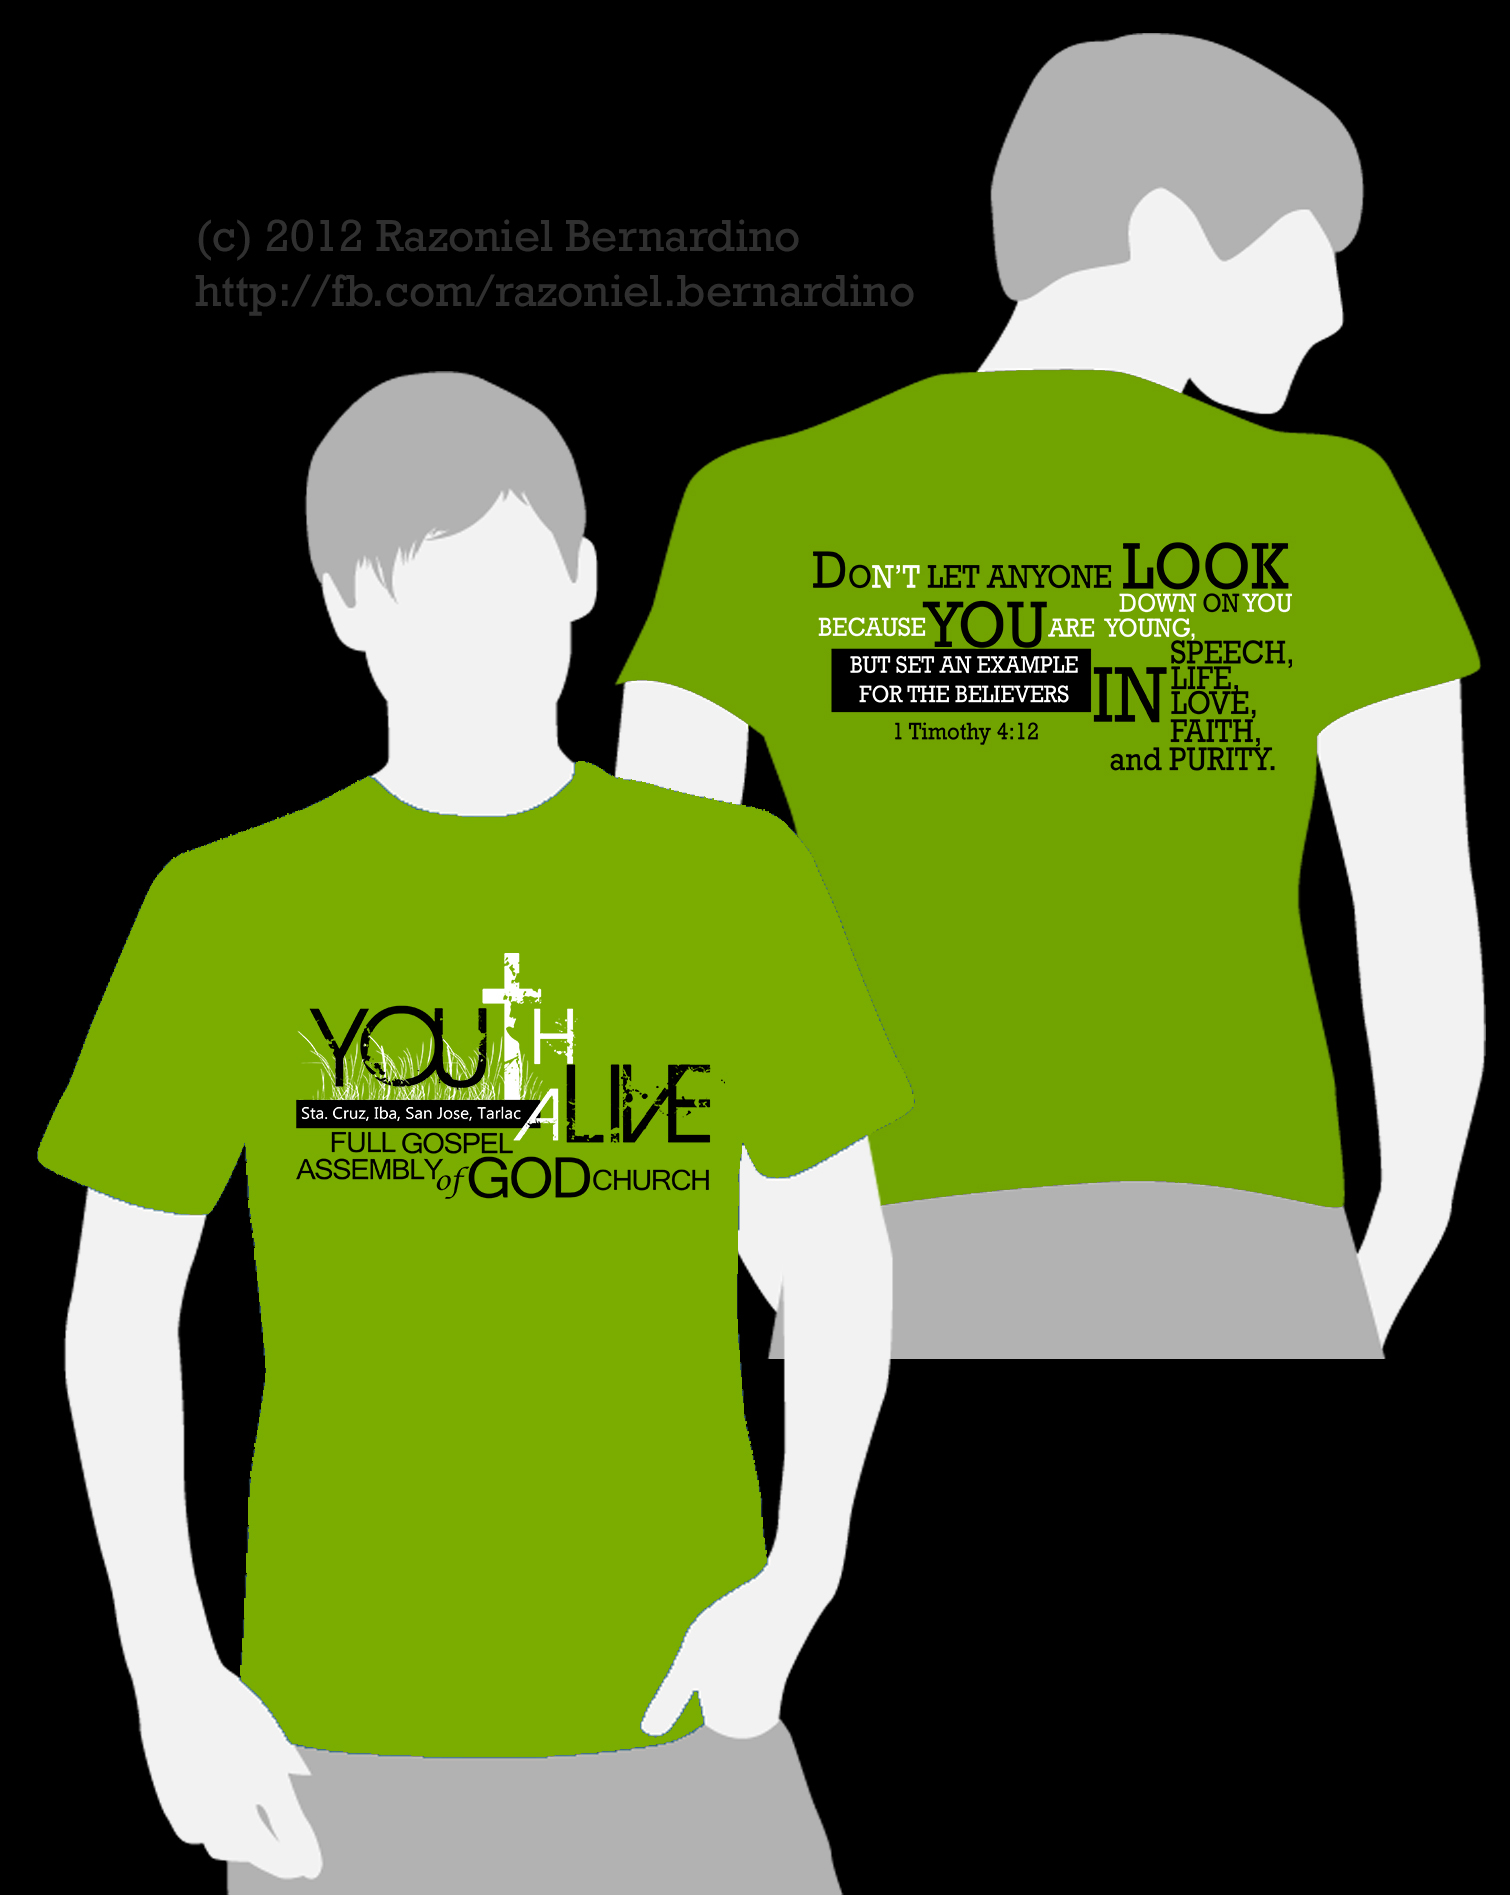 T shirt design youth - Youthalivefinal